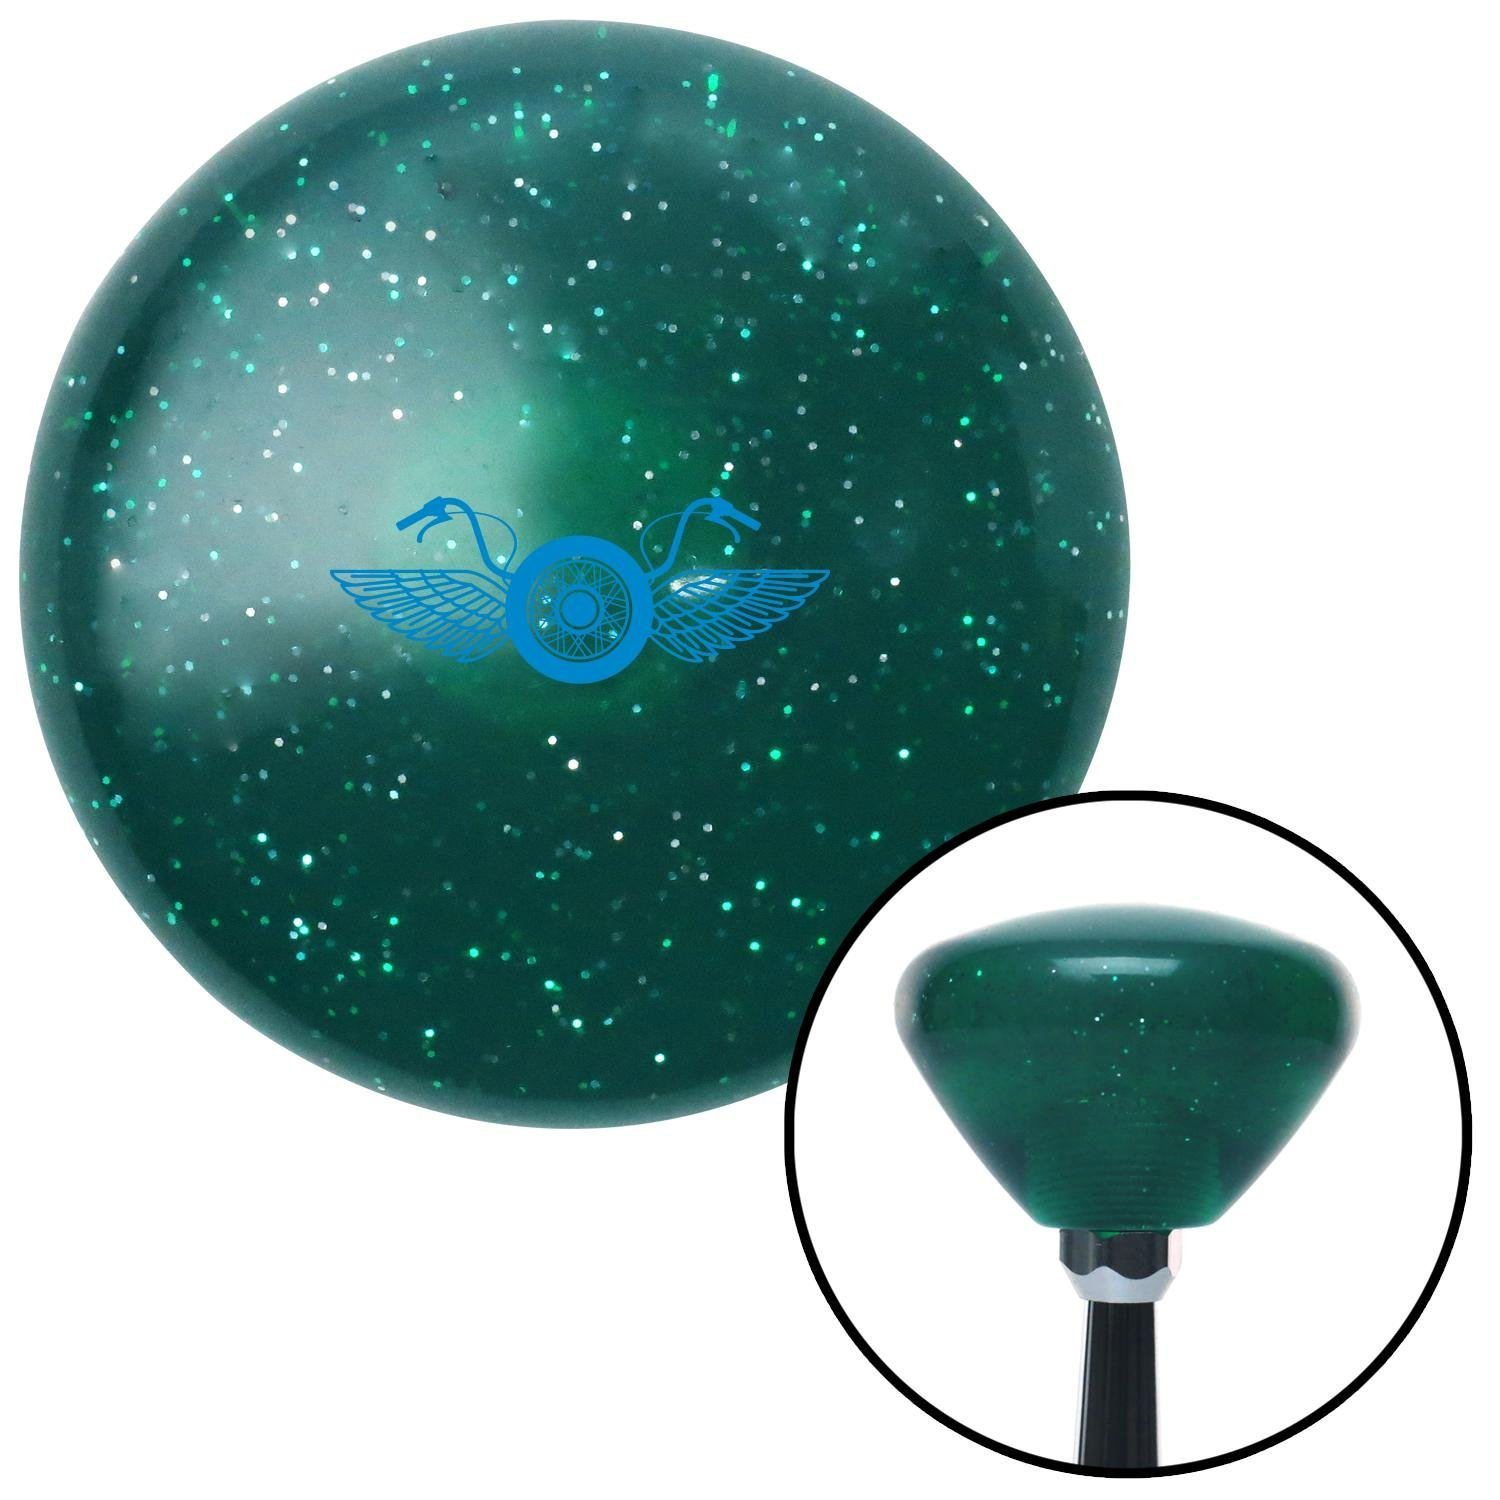 American Shifter 291978 Shift Knob Blue Motorcycle Handlebars Green Retro Metal Flake with M16 x 1.5 Insert